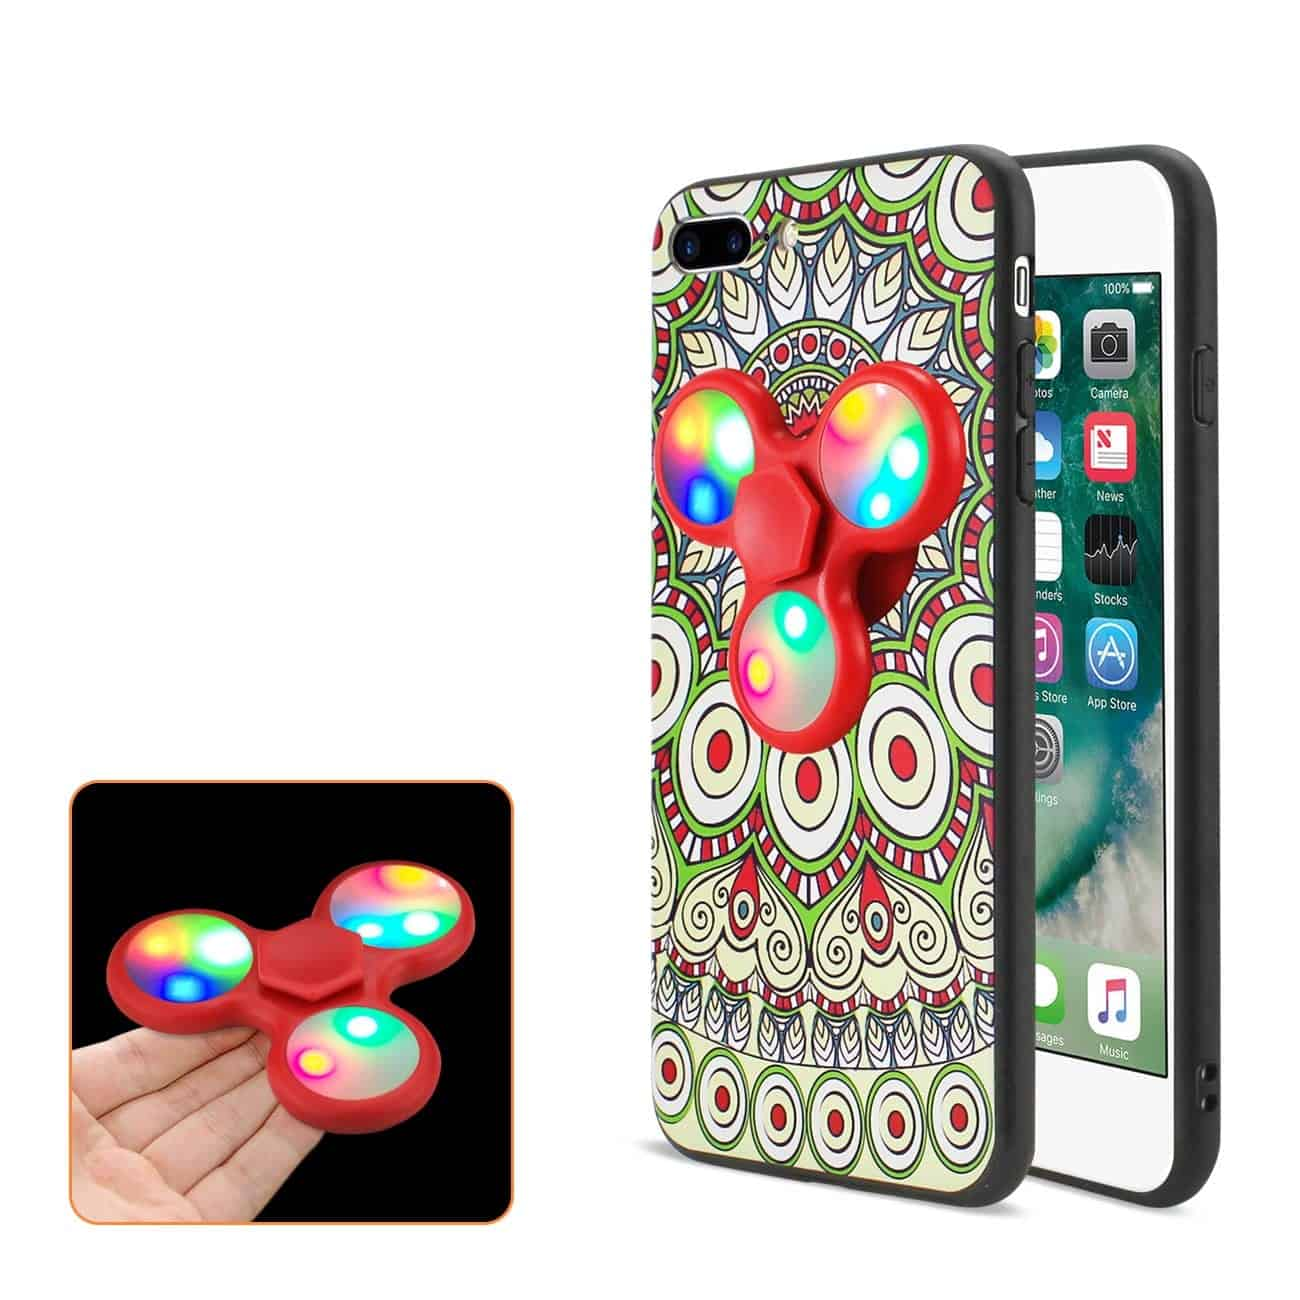 DESIGN THE INSPIRATION OF PEACOCK IPHONE 7 PLUS/ 6 PLUS/ 6S PLUS CASE WITH LED FIDGET SPINNER CLIP ON IN BEIGE